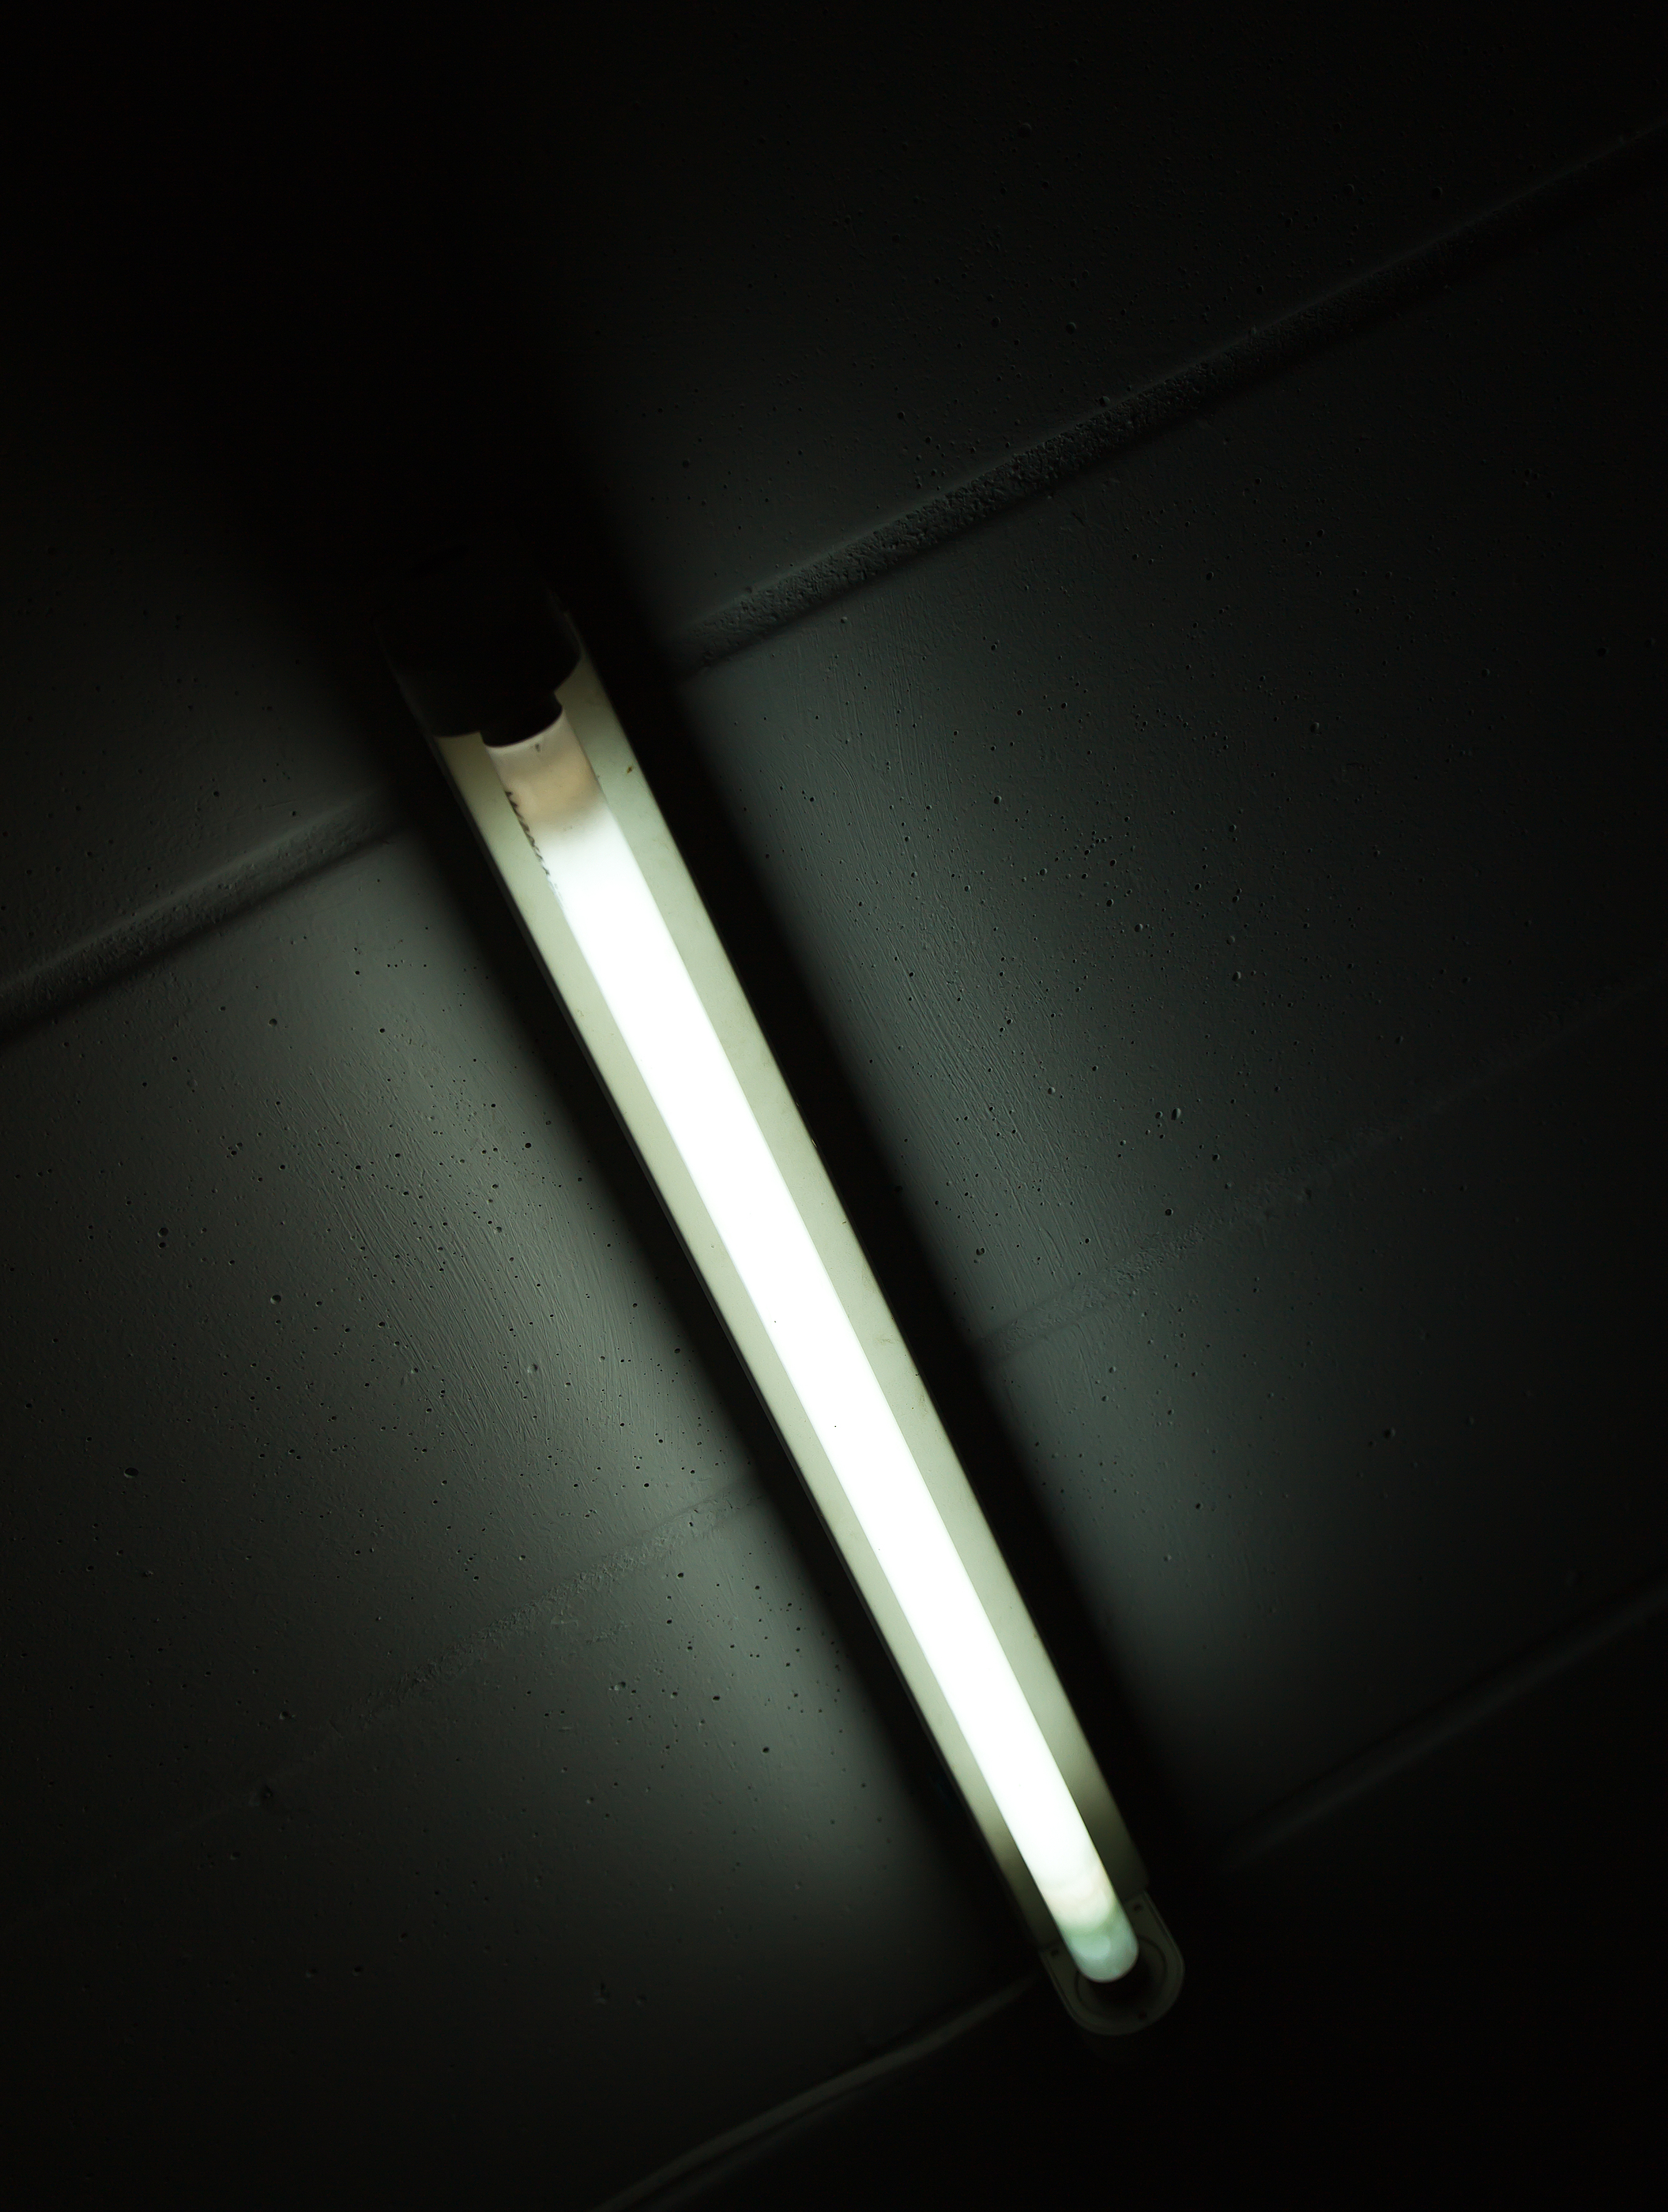 How Fluorescent Lights Work And Why They Are Sometimes Noisy